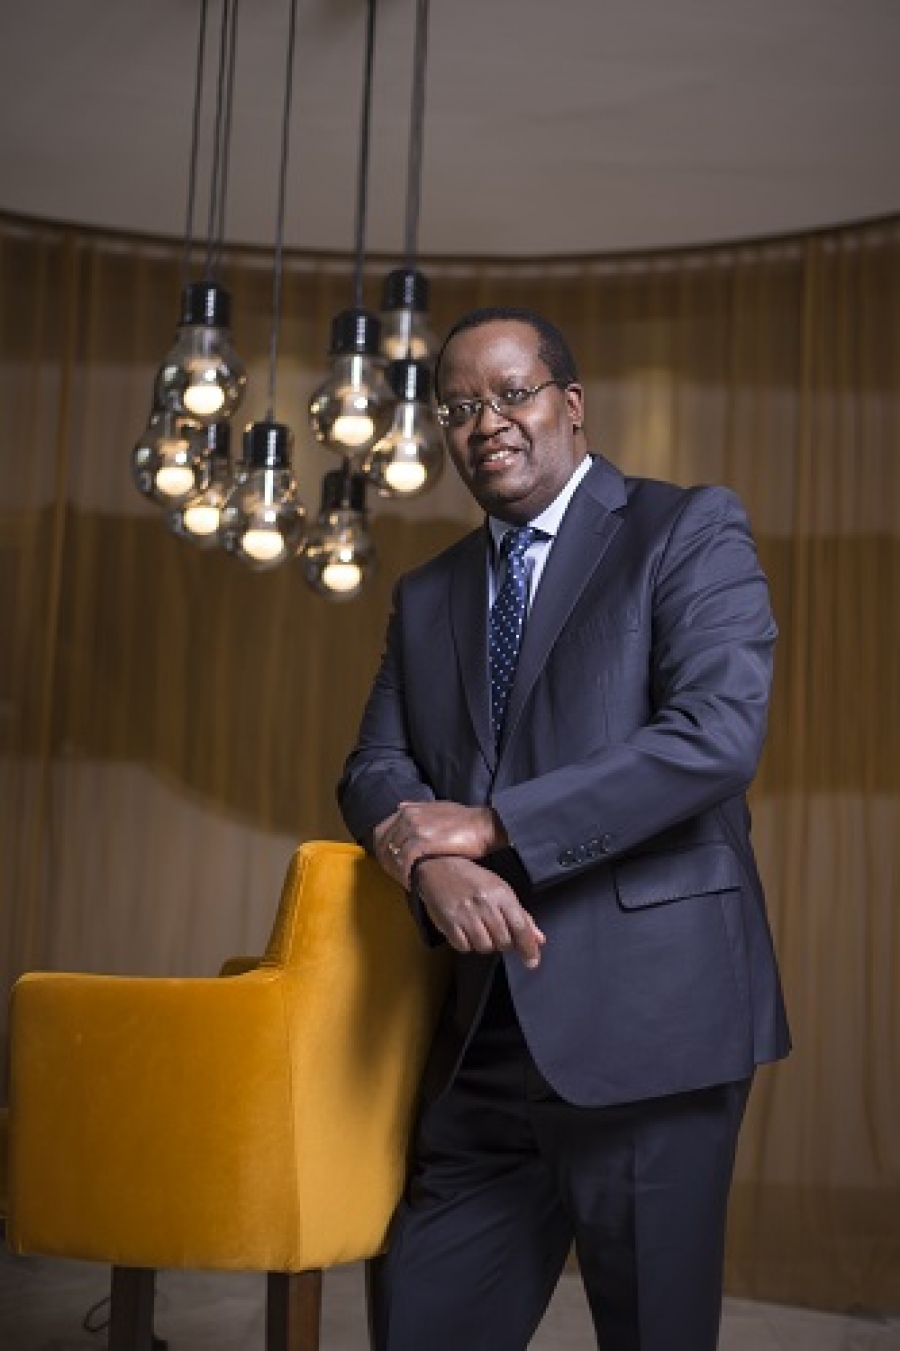 Press Release - Bernard Ngugi appointed Managing Director & CEO